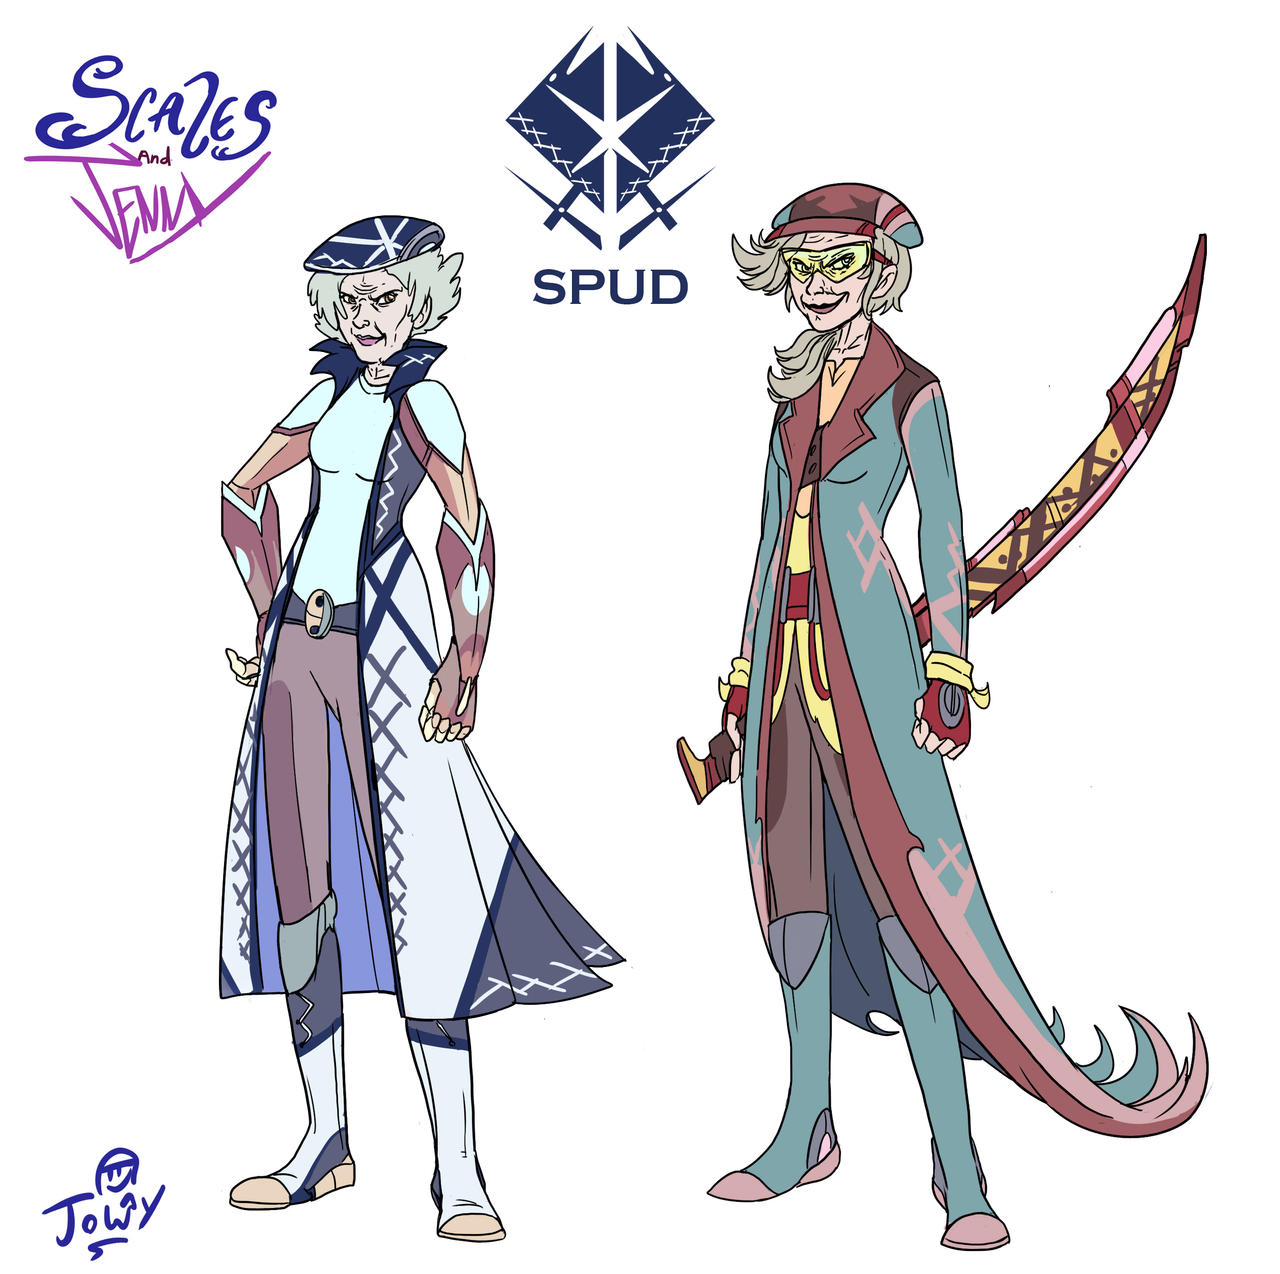 Project Scales and Jenny SPUD heads by Jowybean